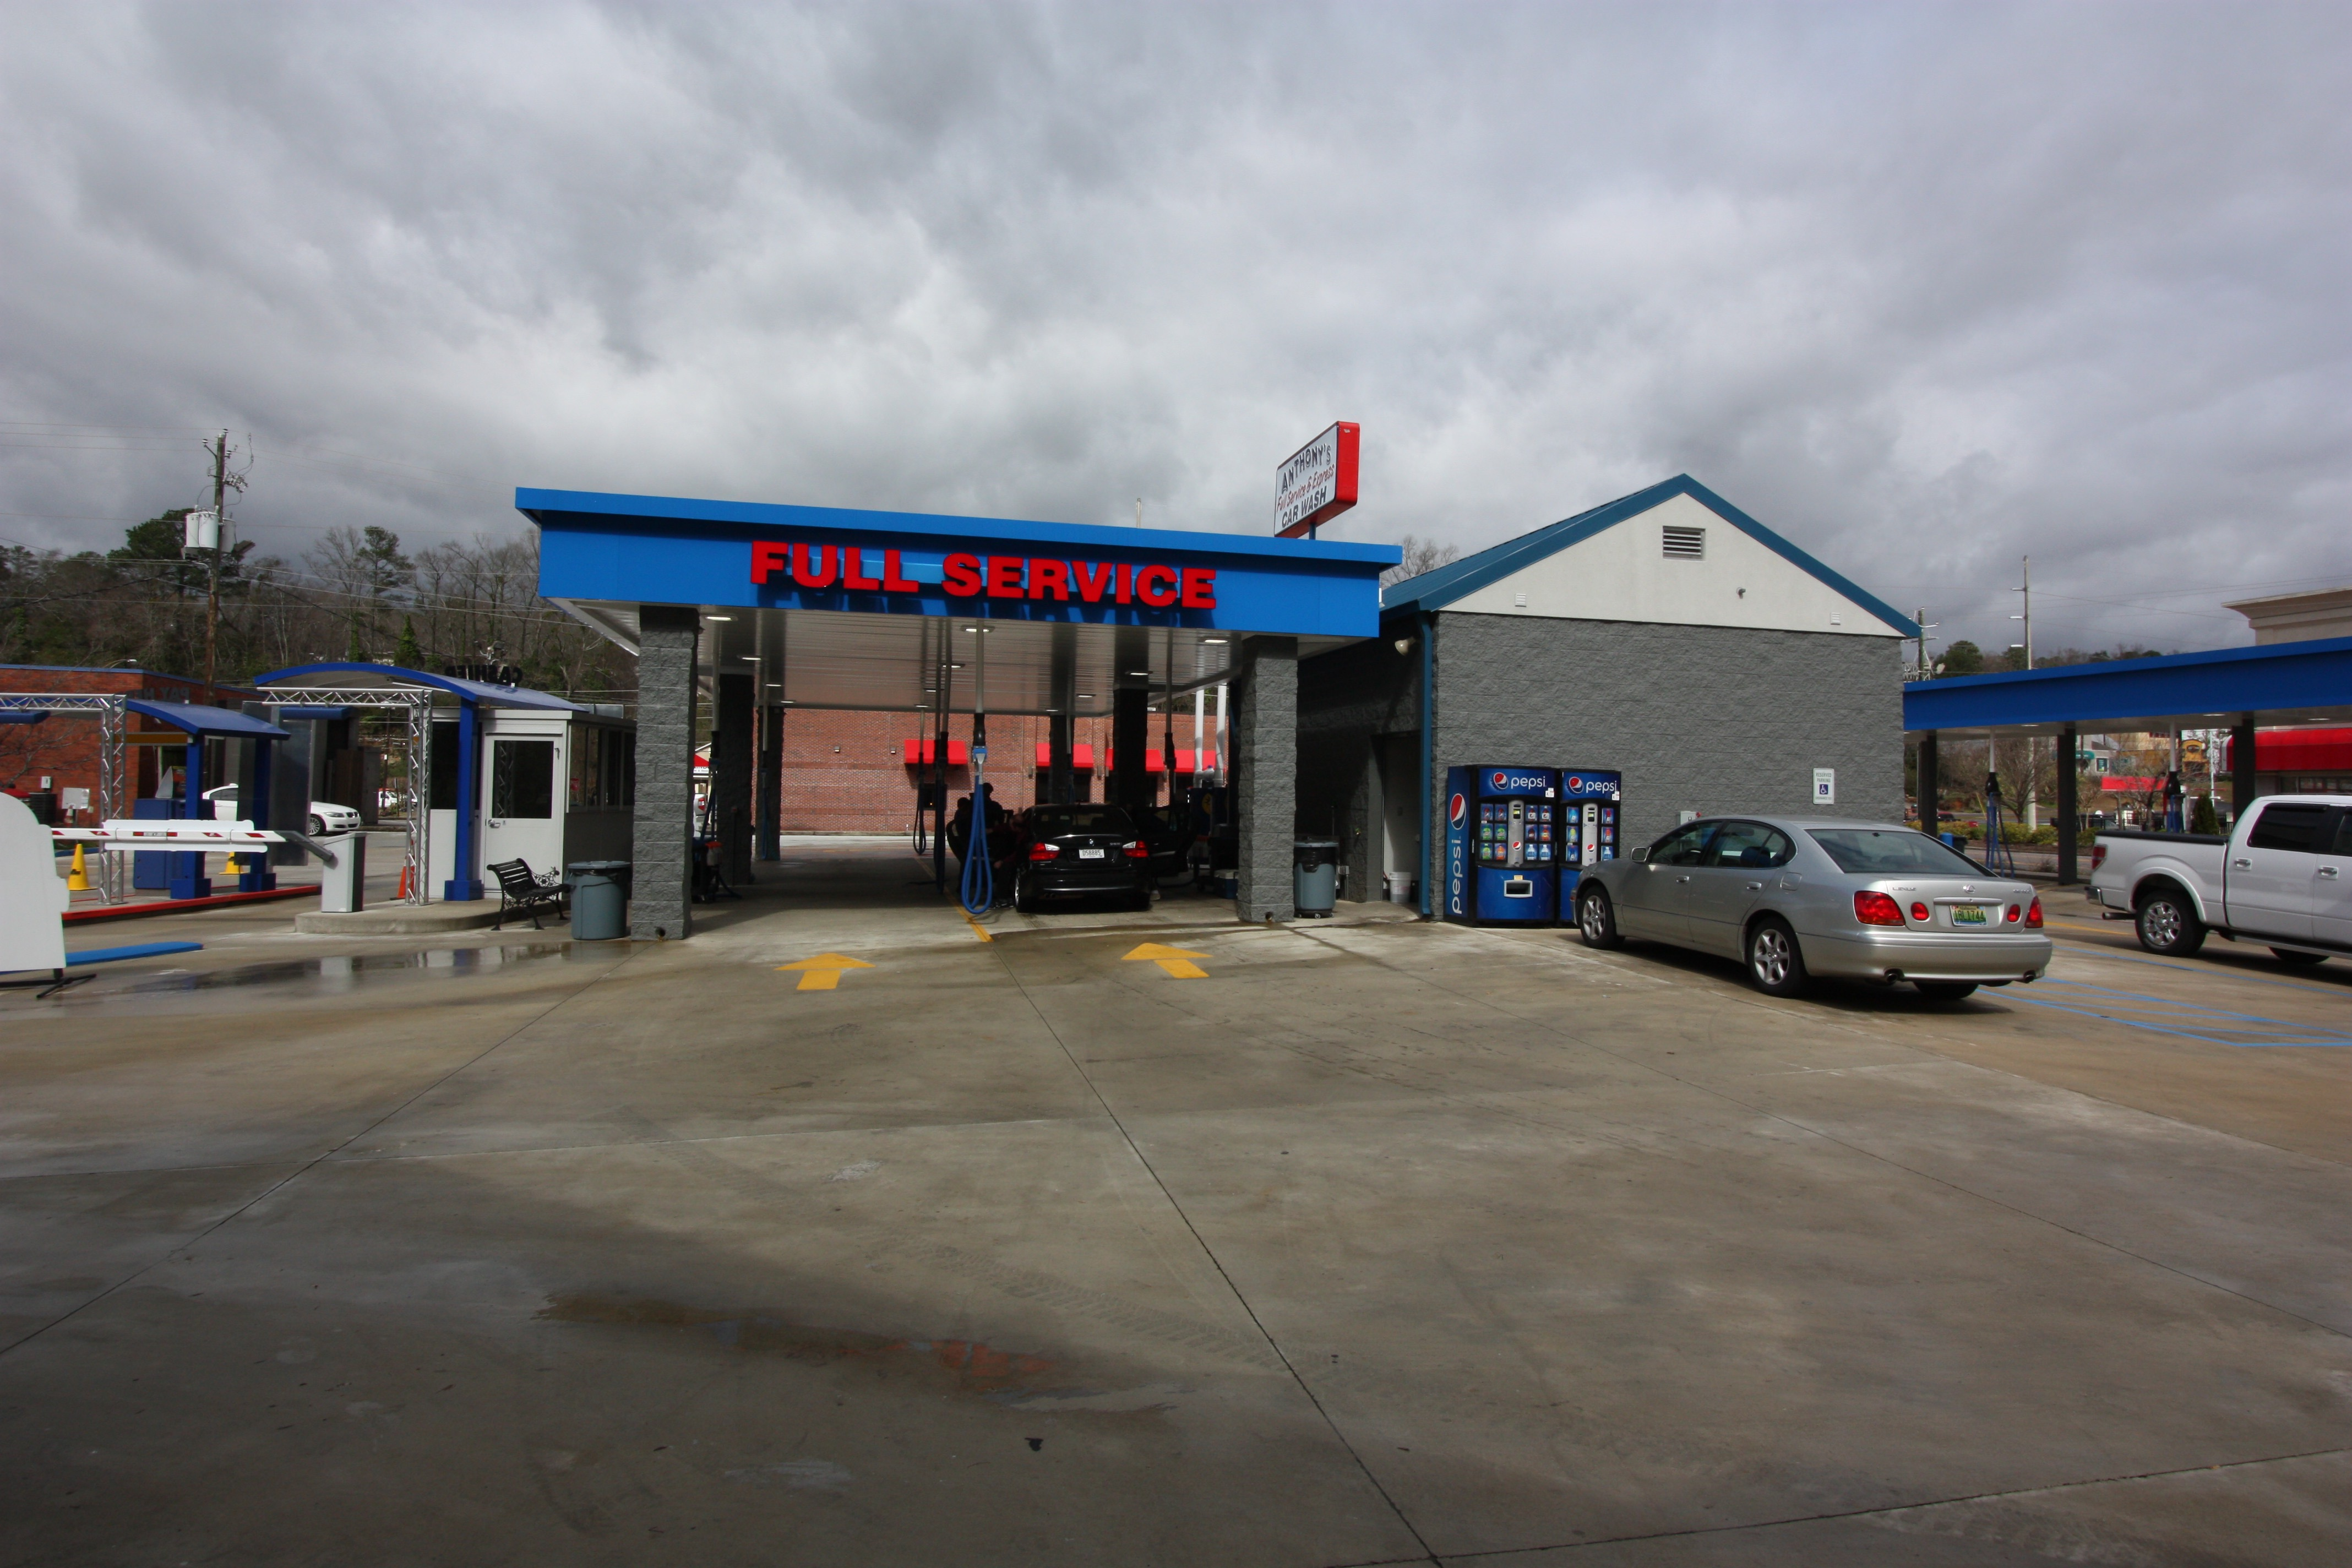 Car wash locations photos coleman hanna carwash systems dapper dans car wash solutioingenieria Image collections